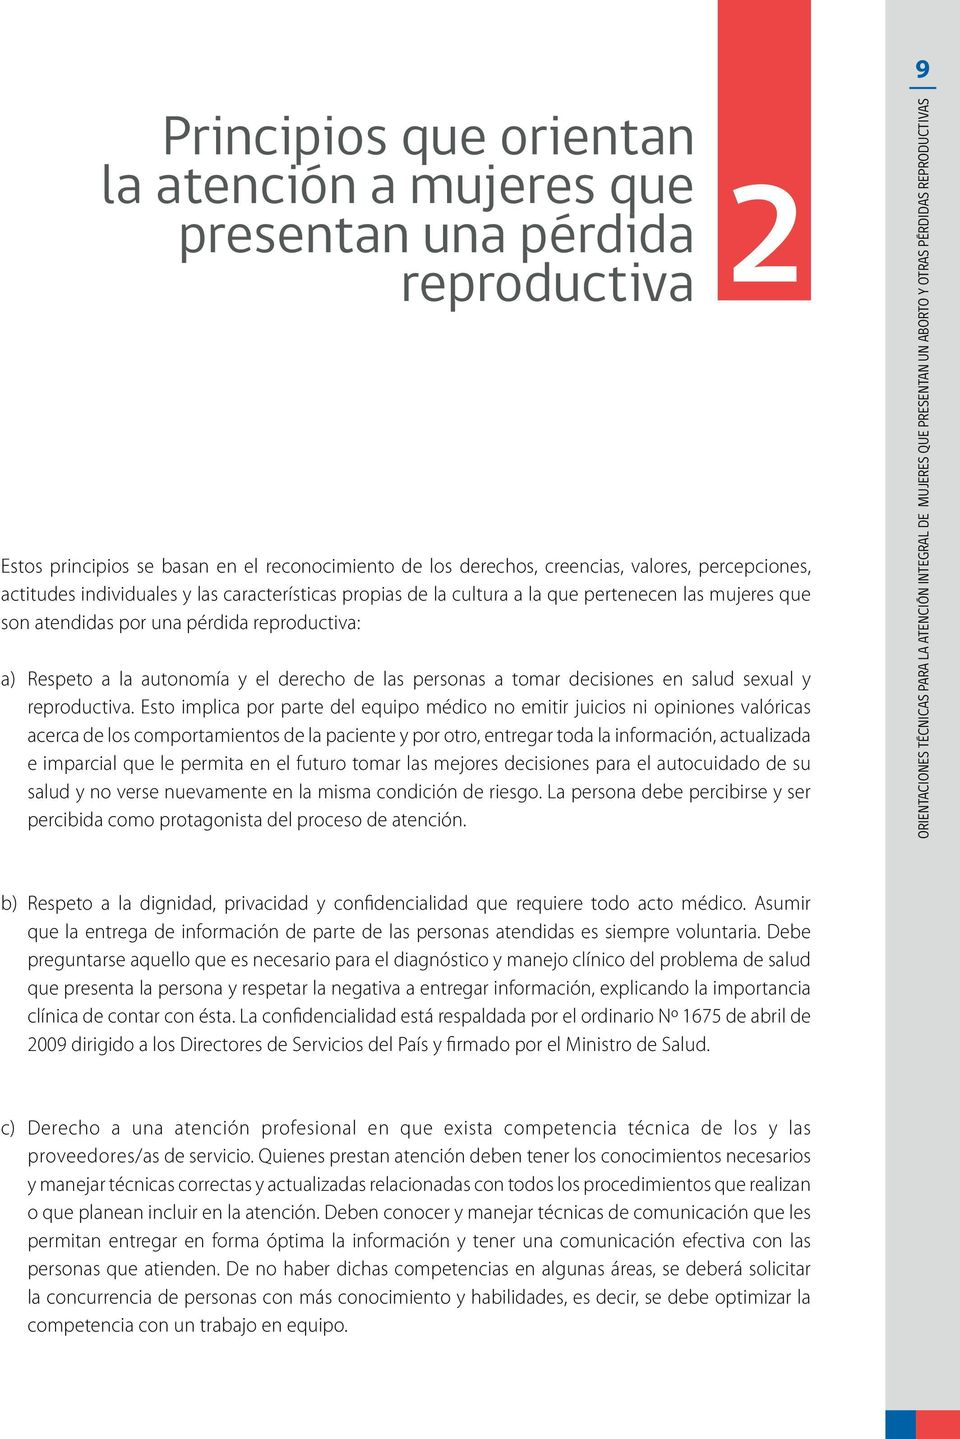 decisiones en salud sexual y reproductiva.